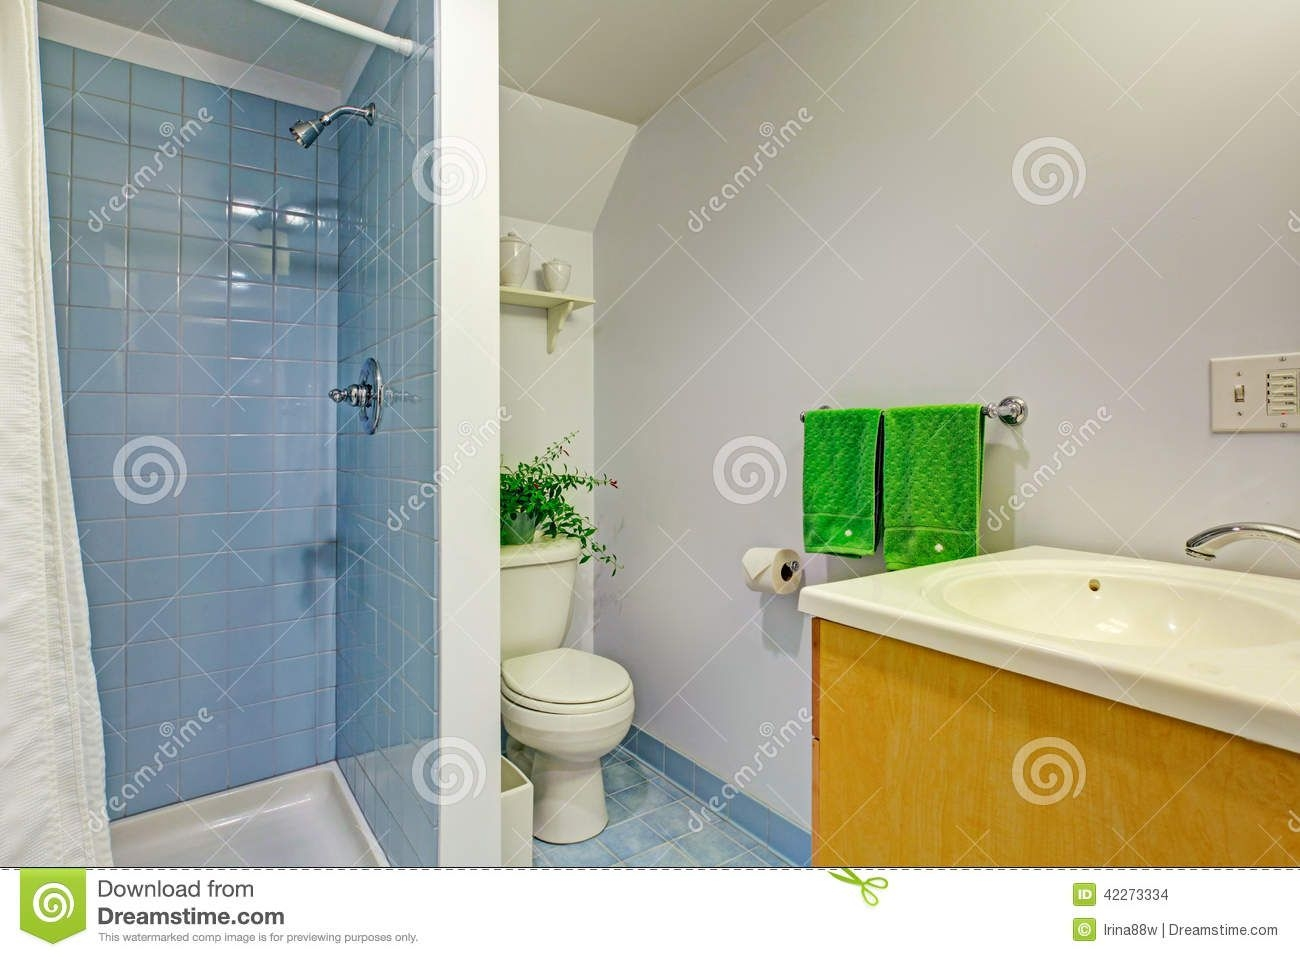 Simple Bathroom Interior In Light Blue Tones Stock Photo  Image Of Door Style 42273334